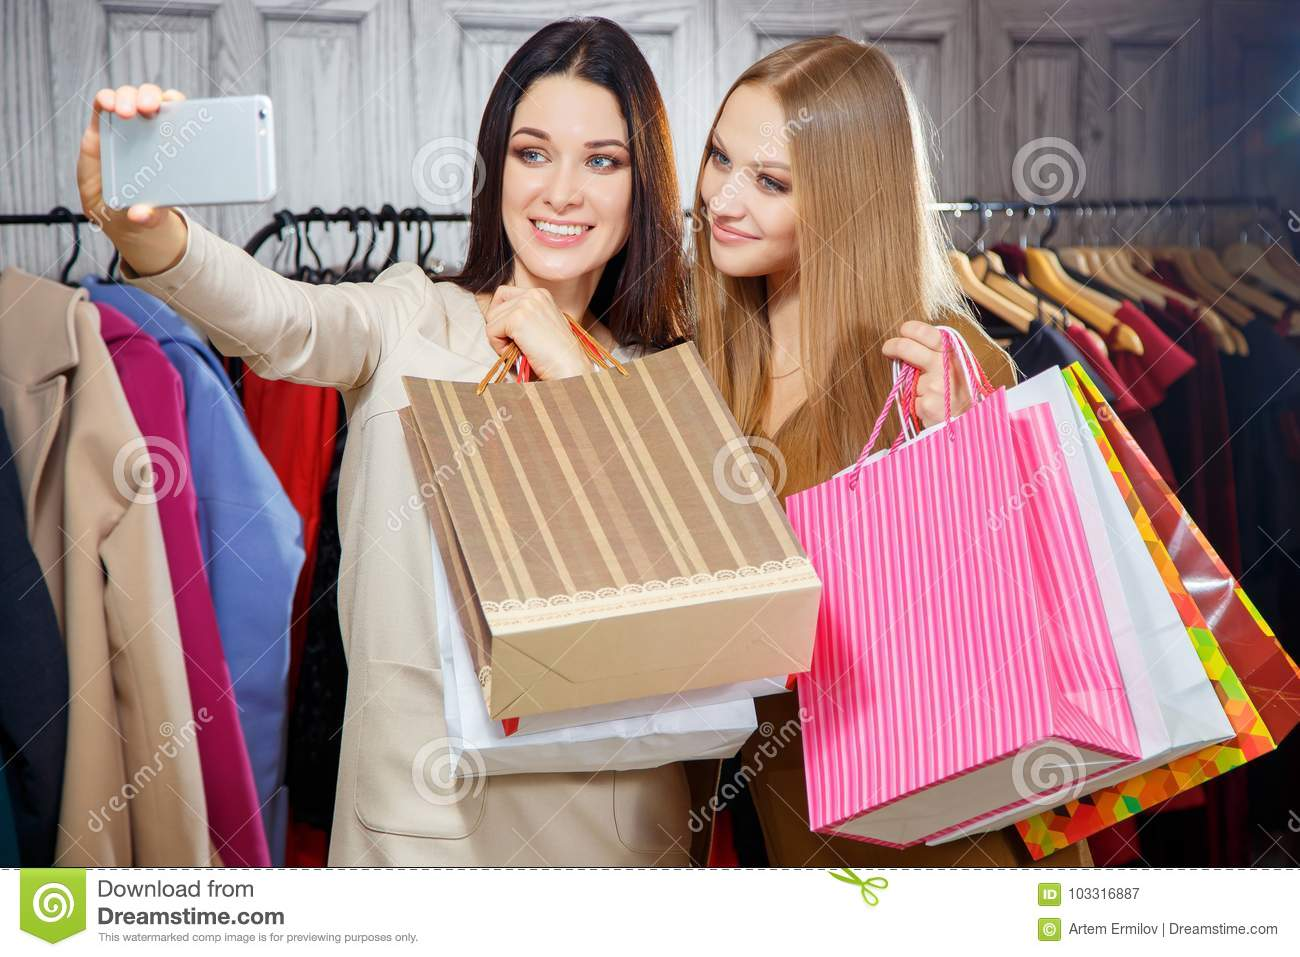 Fashion Portrait Of Two Young Beautiful Women Friends In Shopping Mall With A Lot Bags Making Selfie